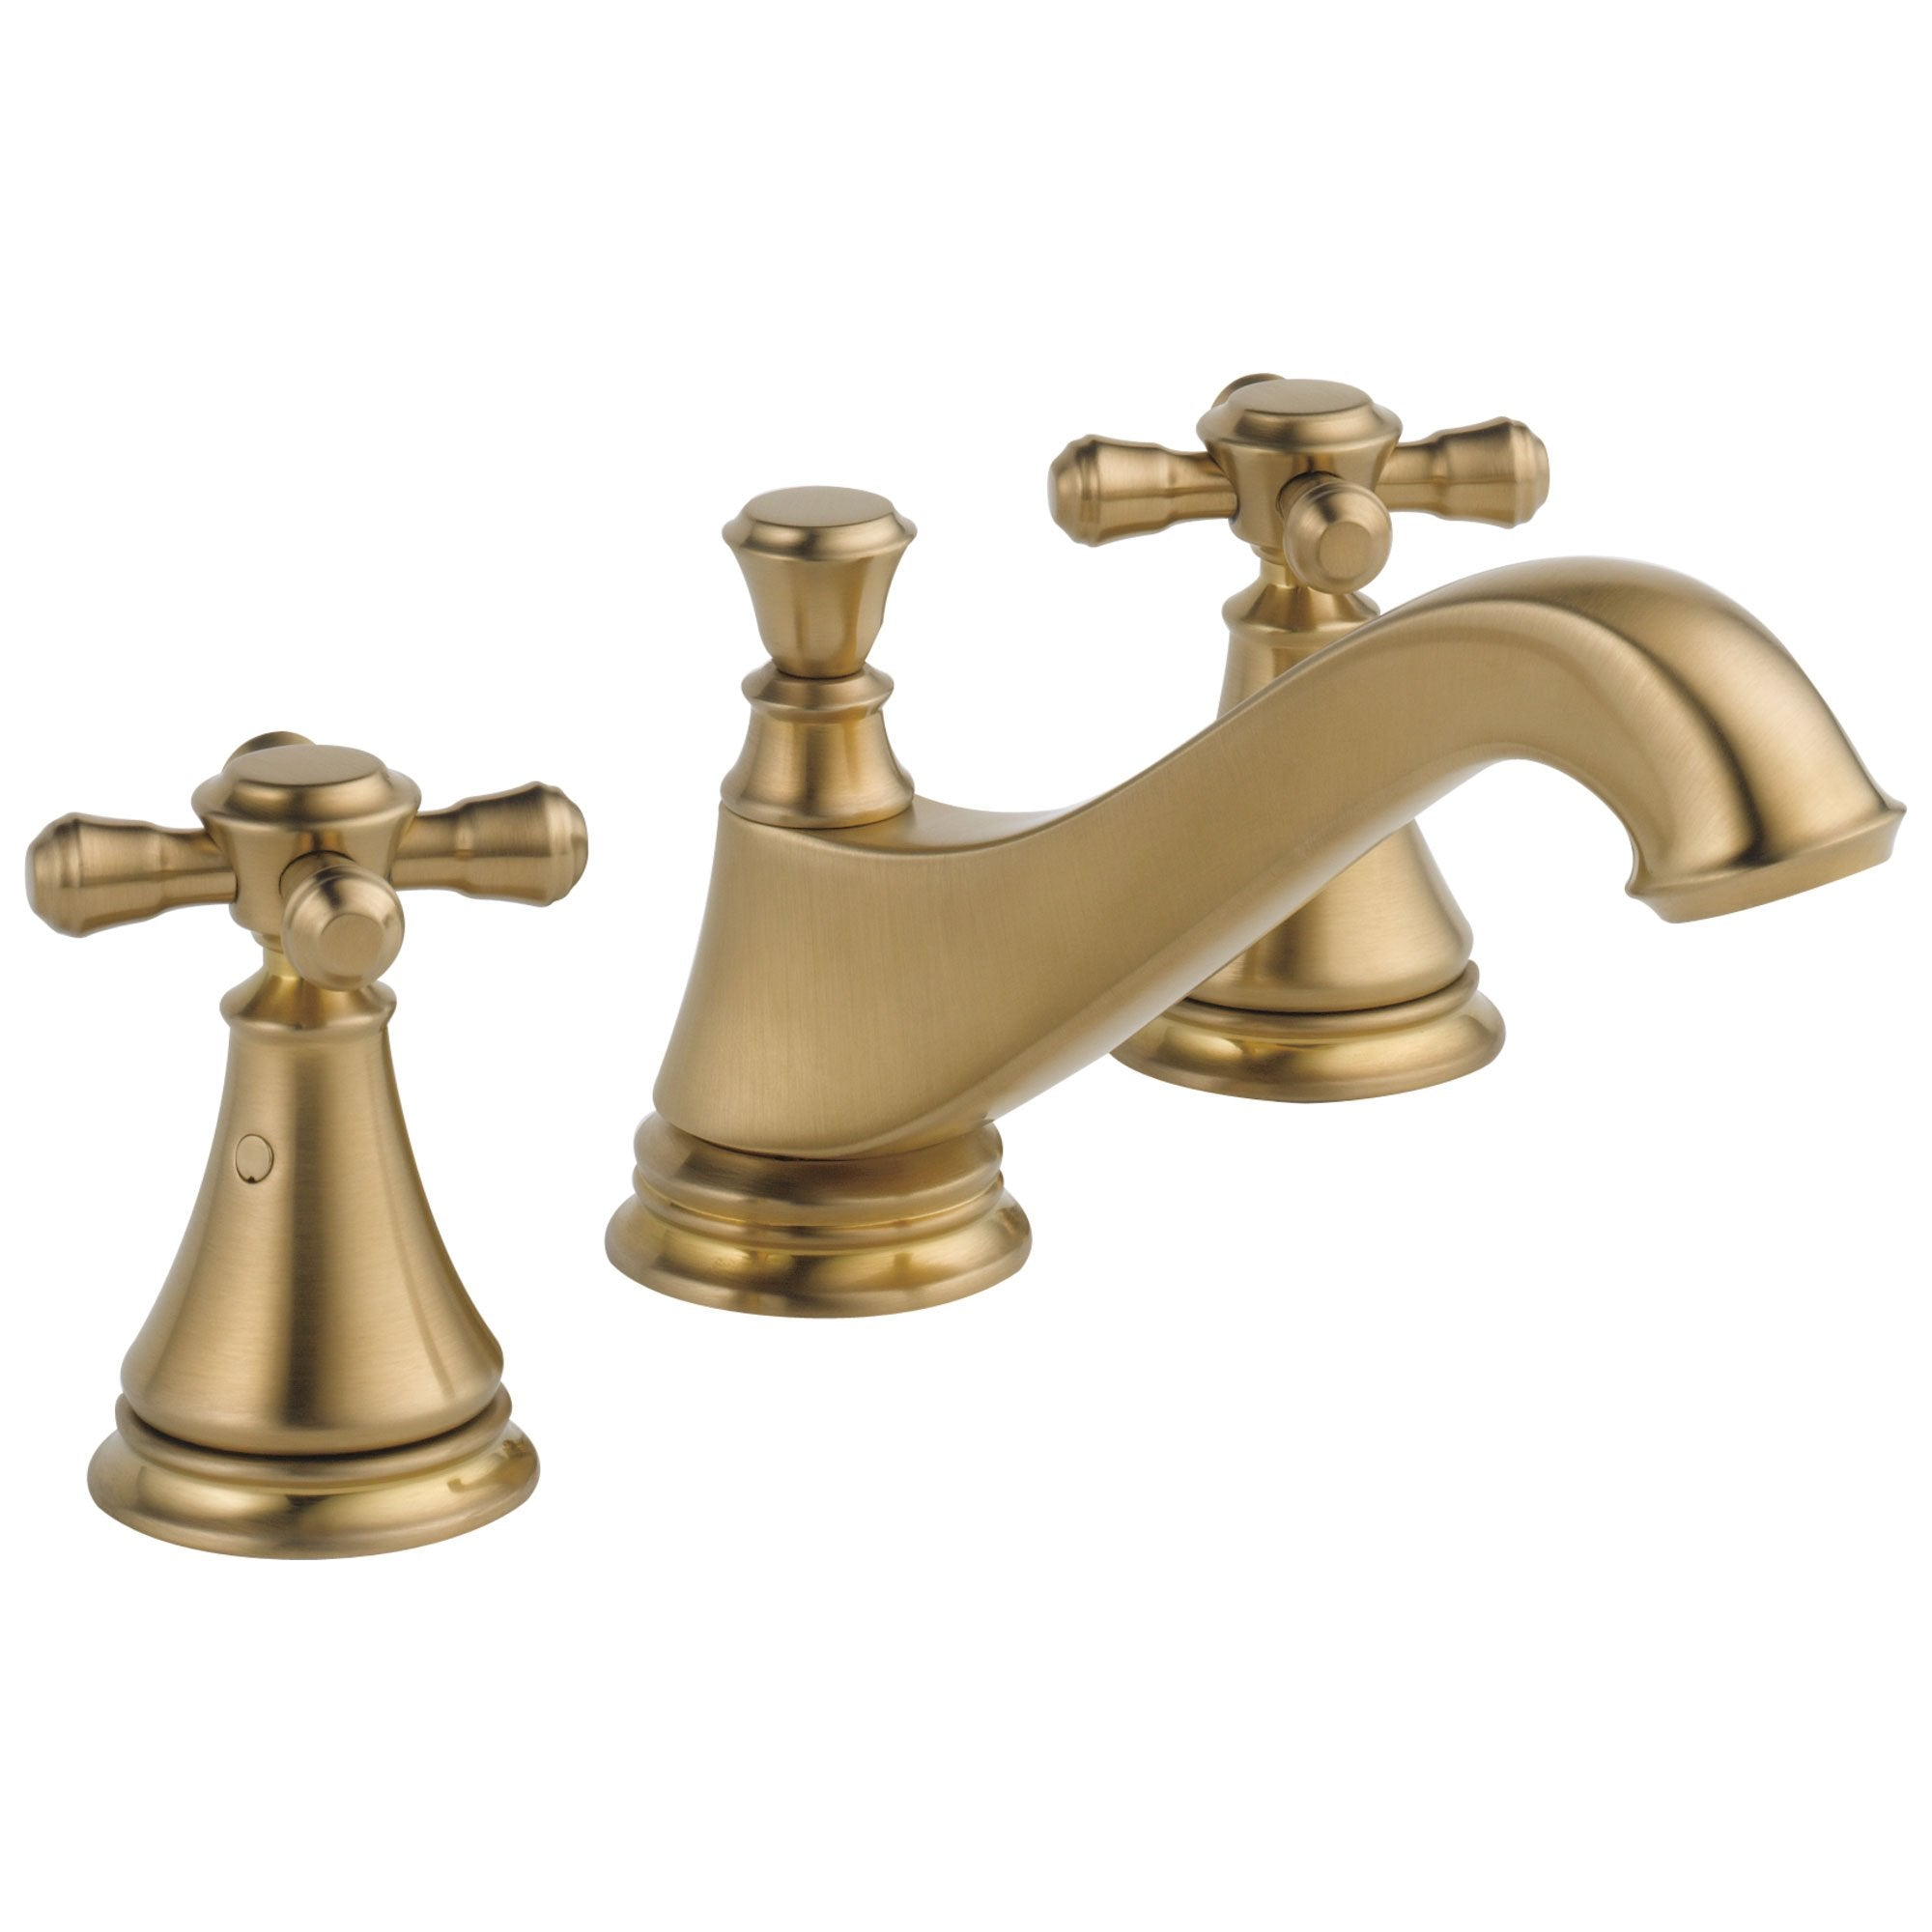 Delta Cassidy Collection Champagne Bronze Traditional Low Spout Widespread Bathroom Sink Faucet INCLUDES Two Cross Handles and Drain D1801V